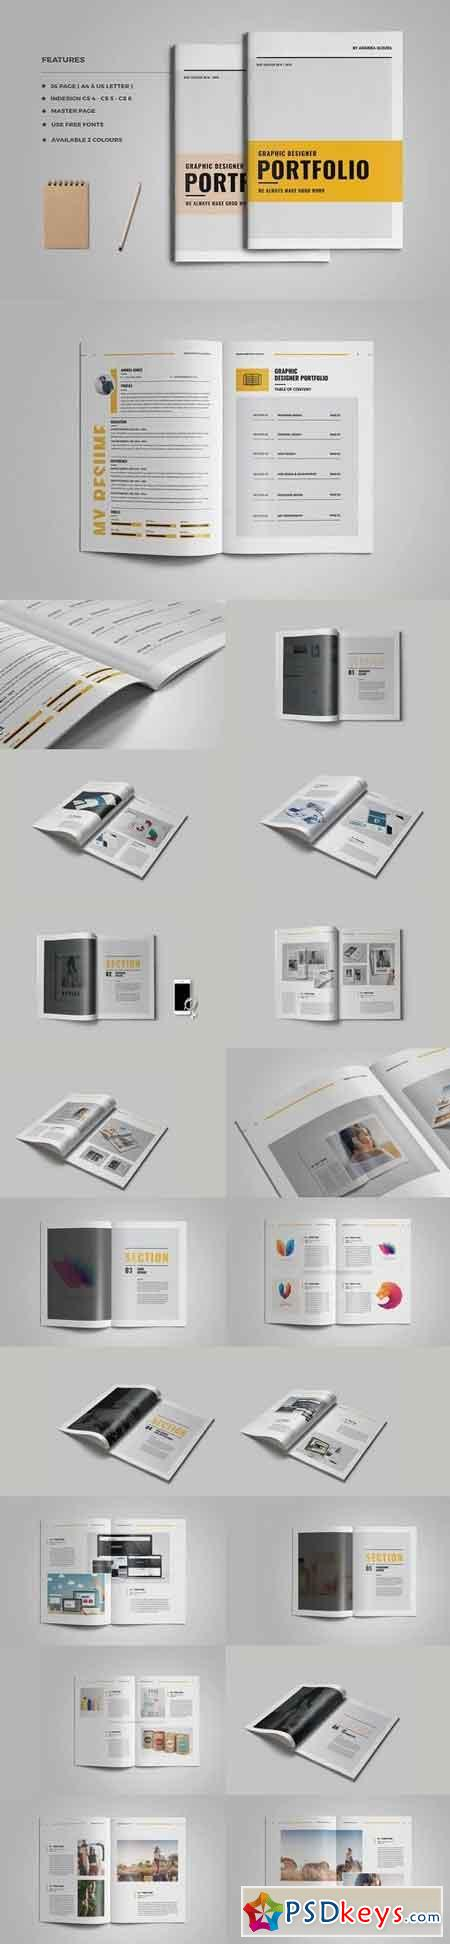 Graphic Design Portfolio 1800469